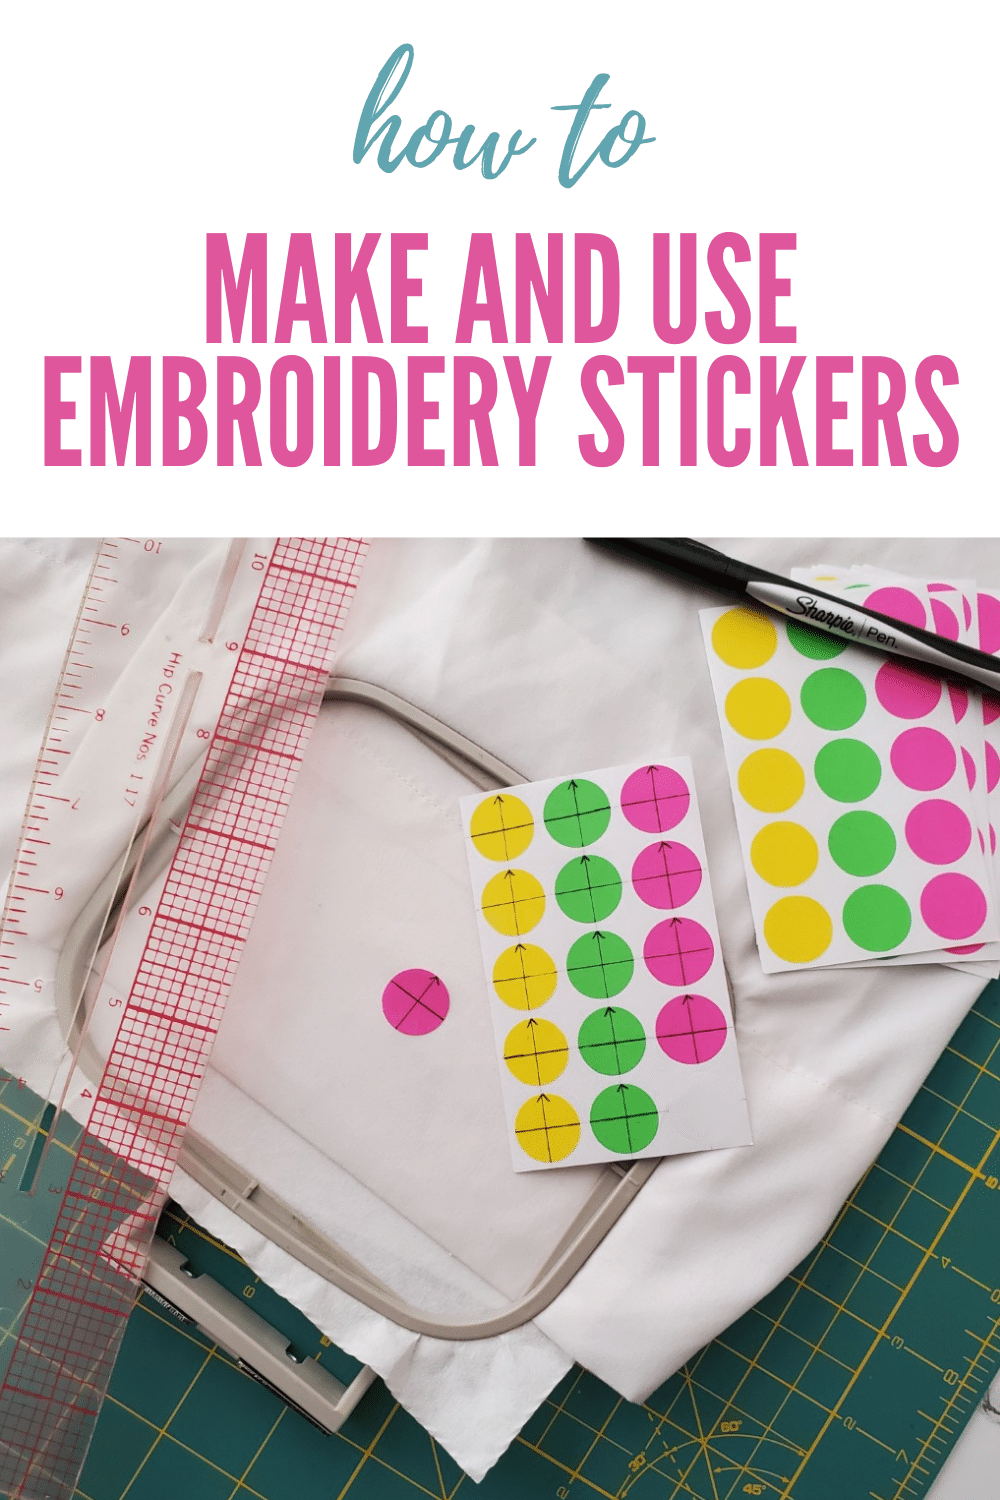 Make and use embroidery stickers